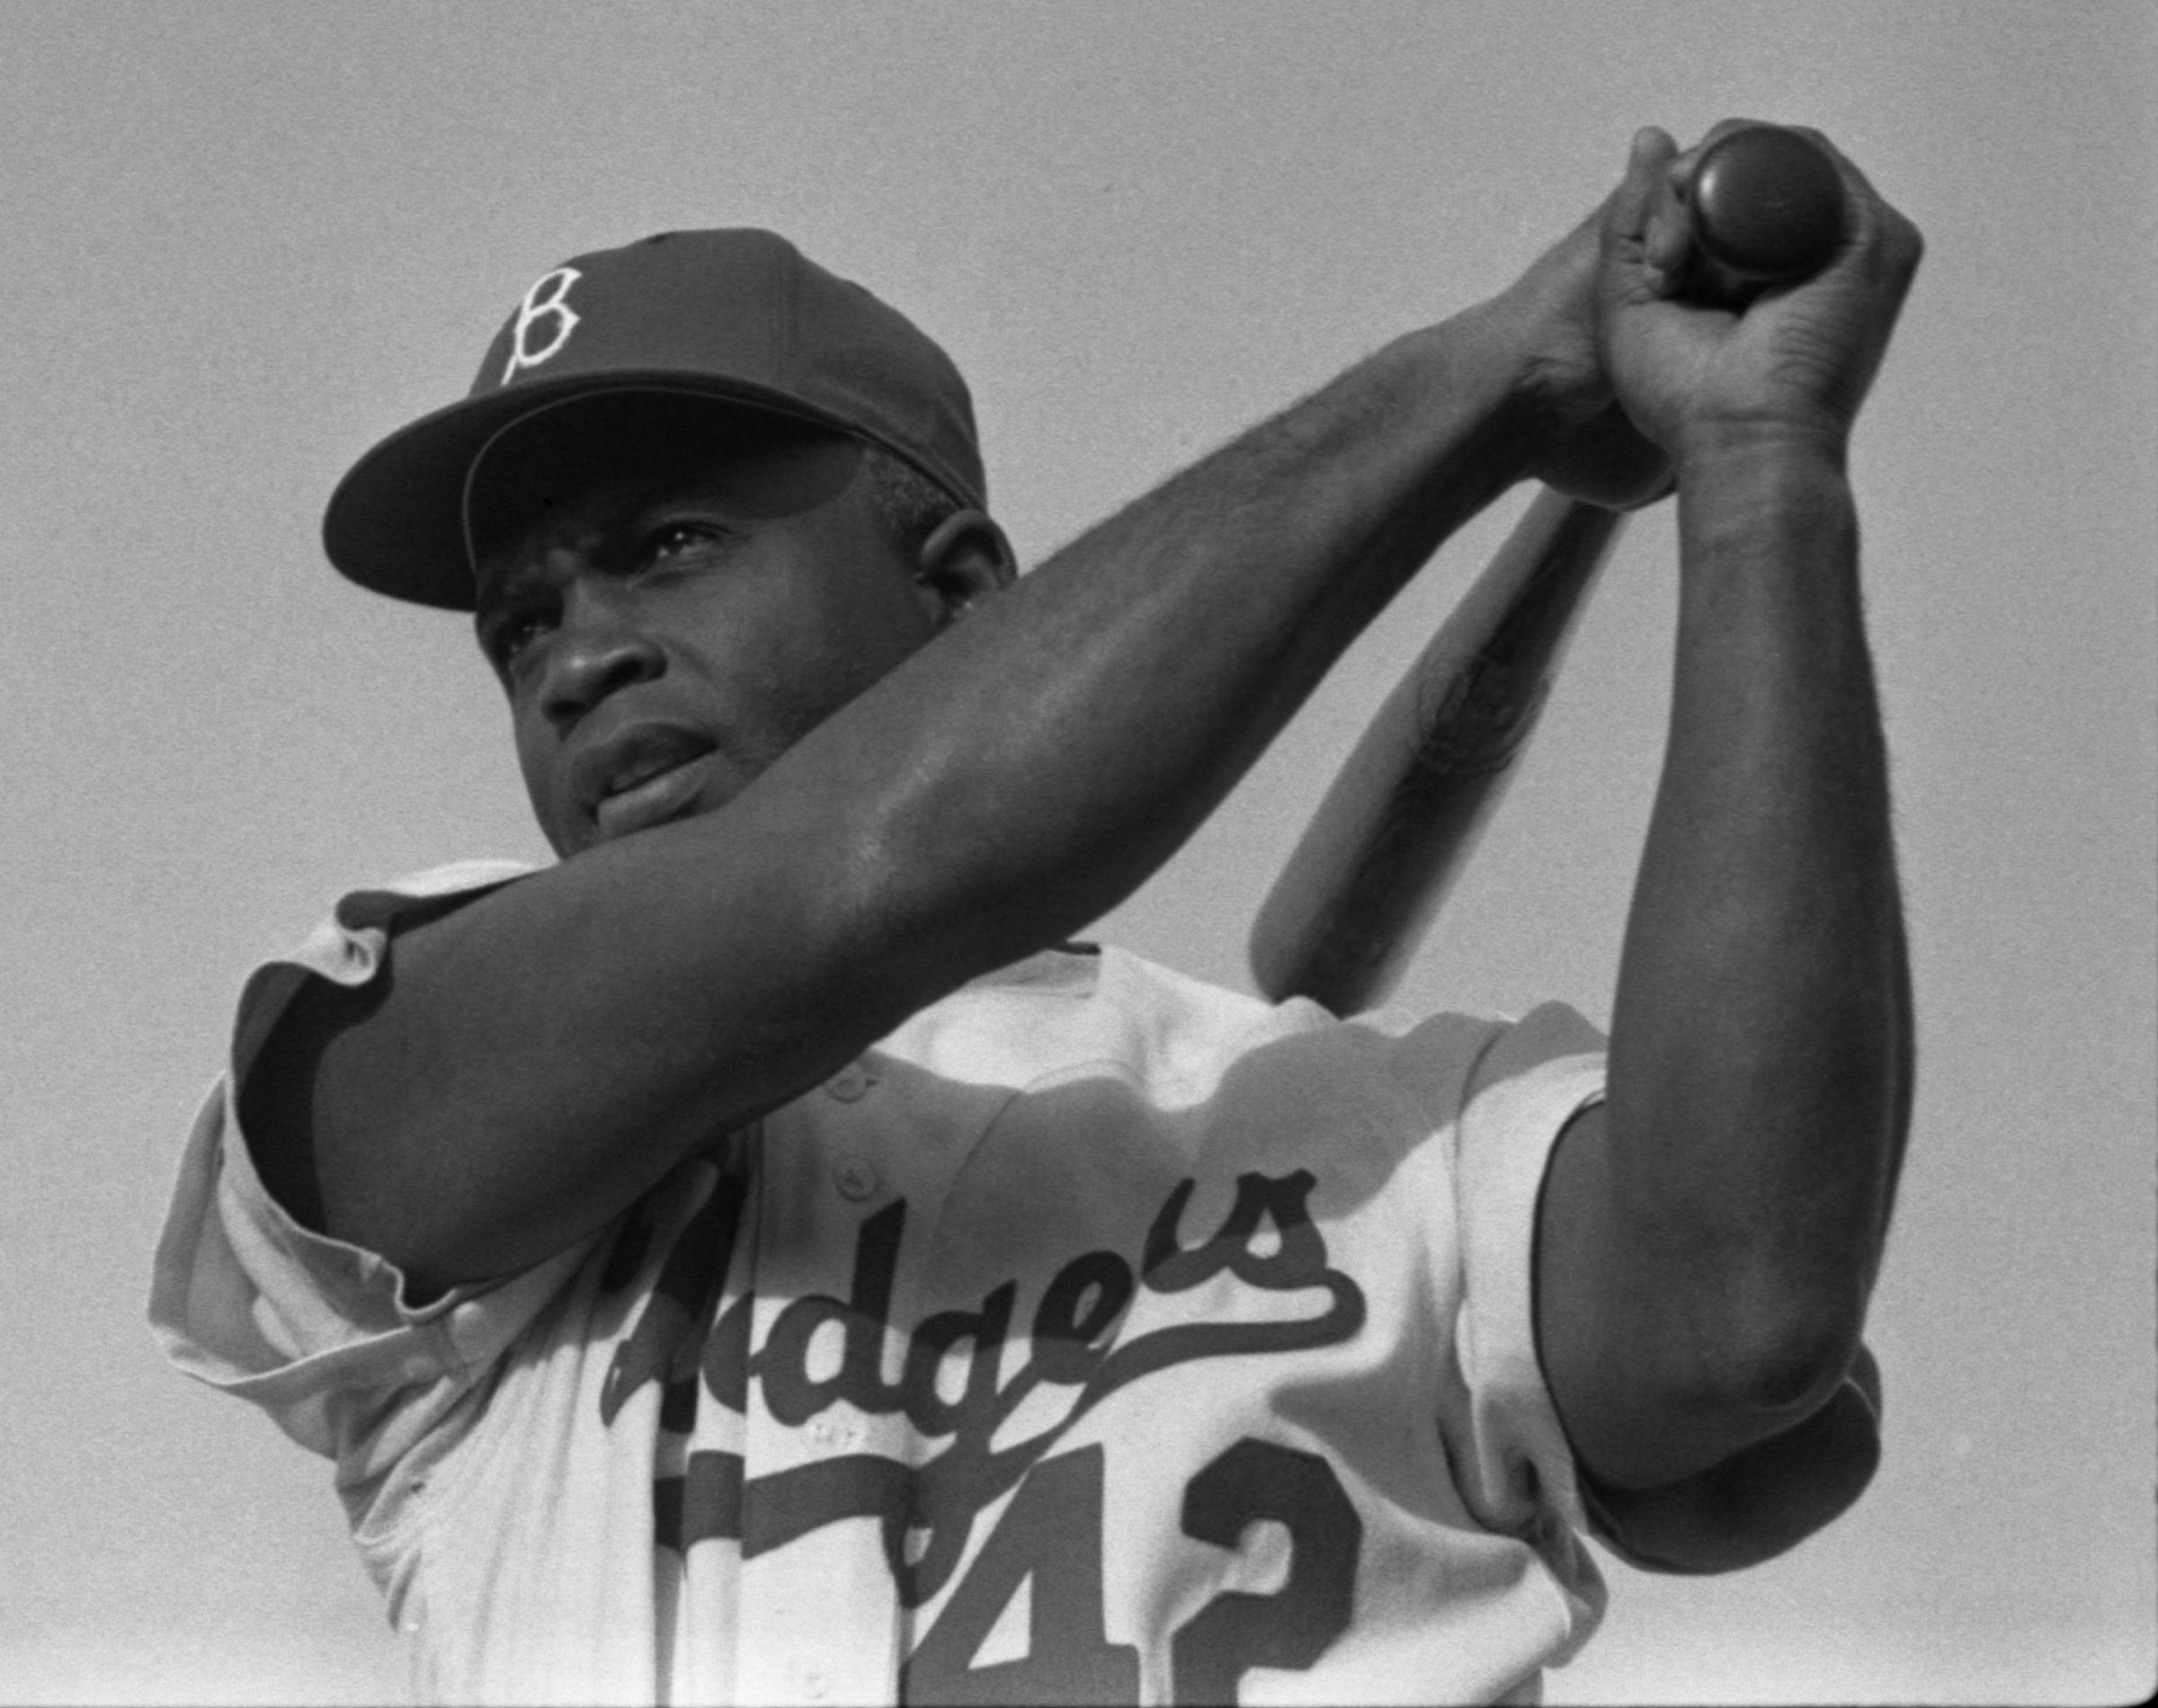 ken burns goes behind the bat jackie robinson documentary in 1947 jackie robinson became the first black player in major league baseball